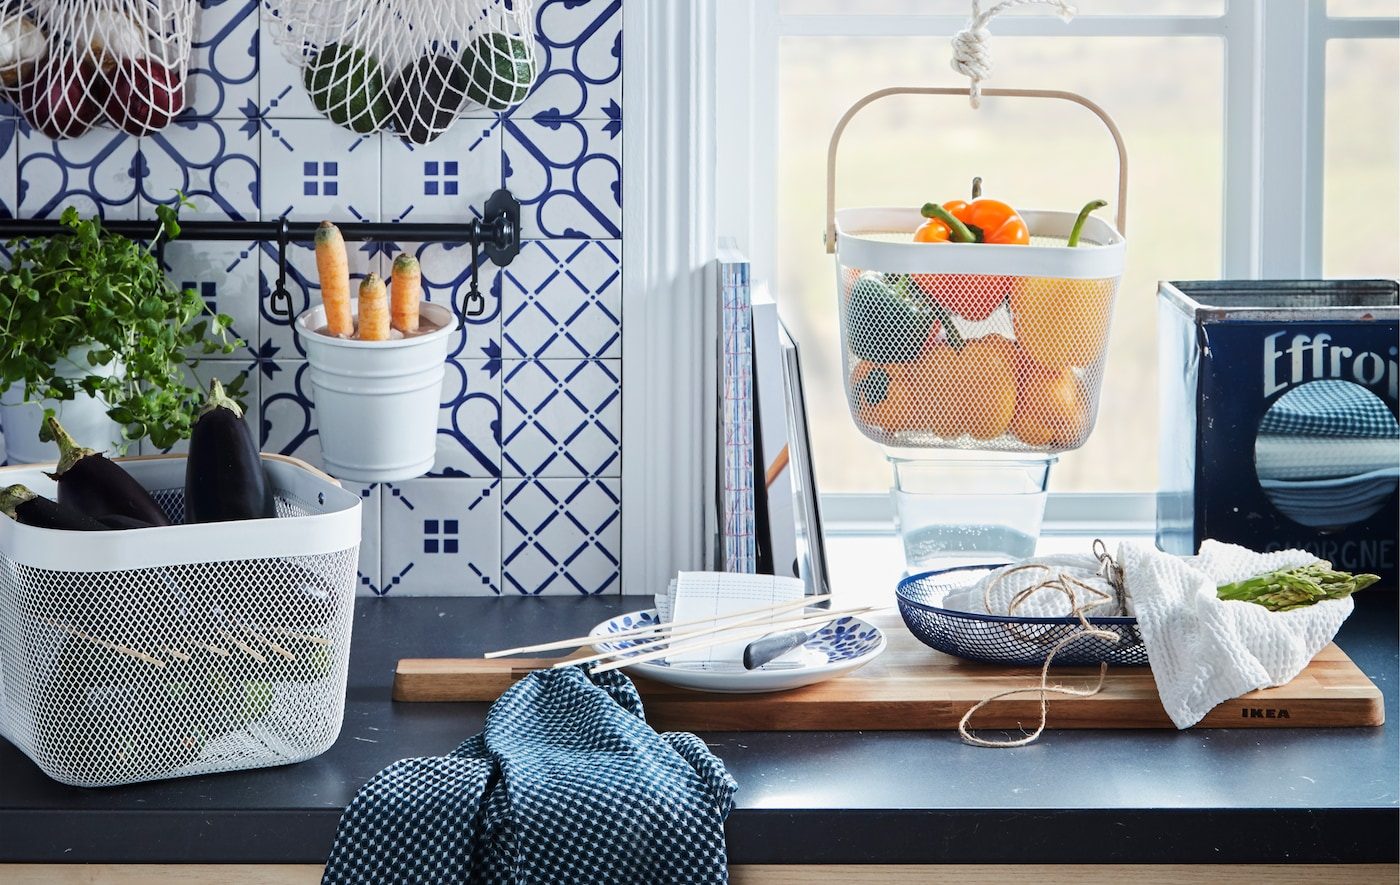 Kitchen worktop with various food produce kept in hanging and standing containers, like KUNGSFORS nets and RISATORP baskets.